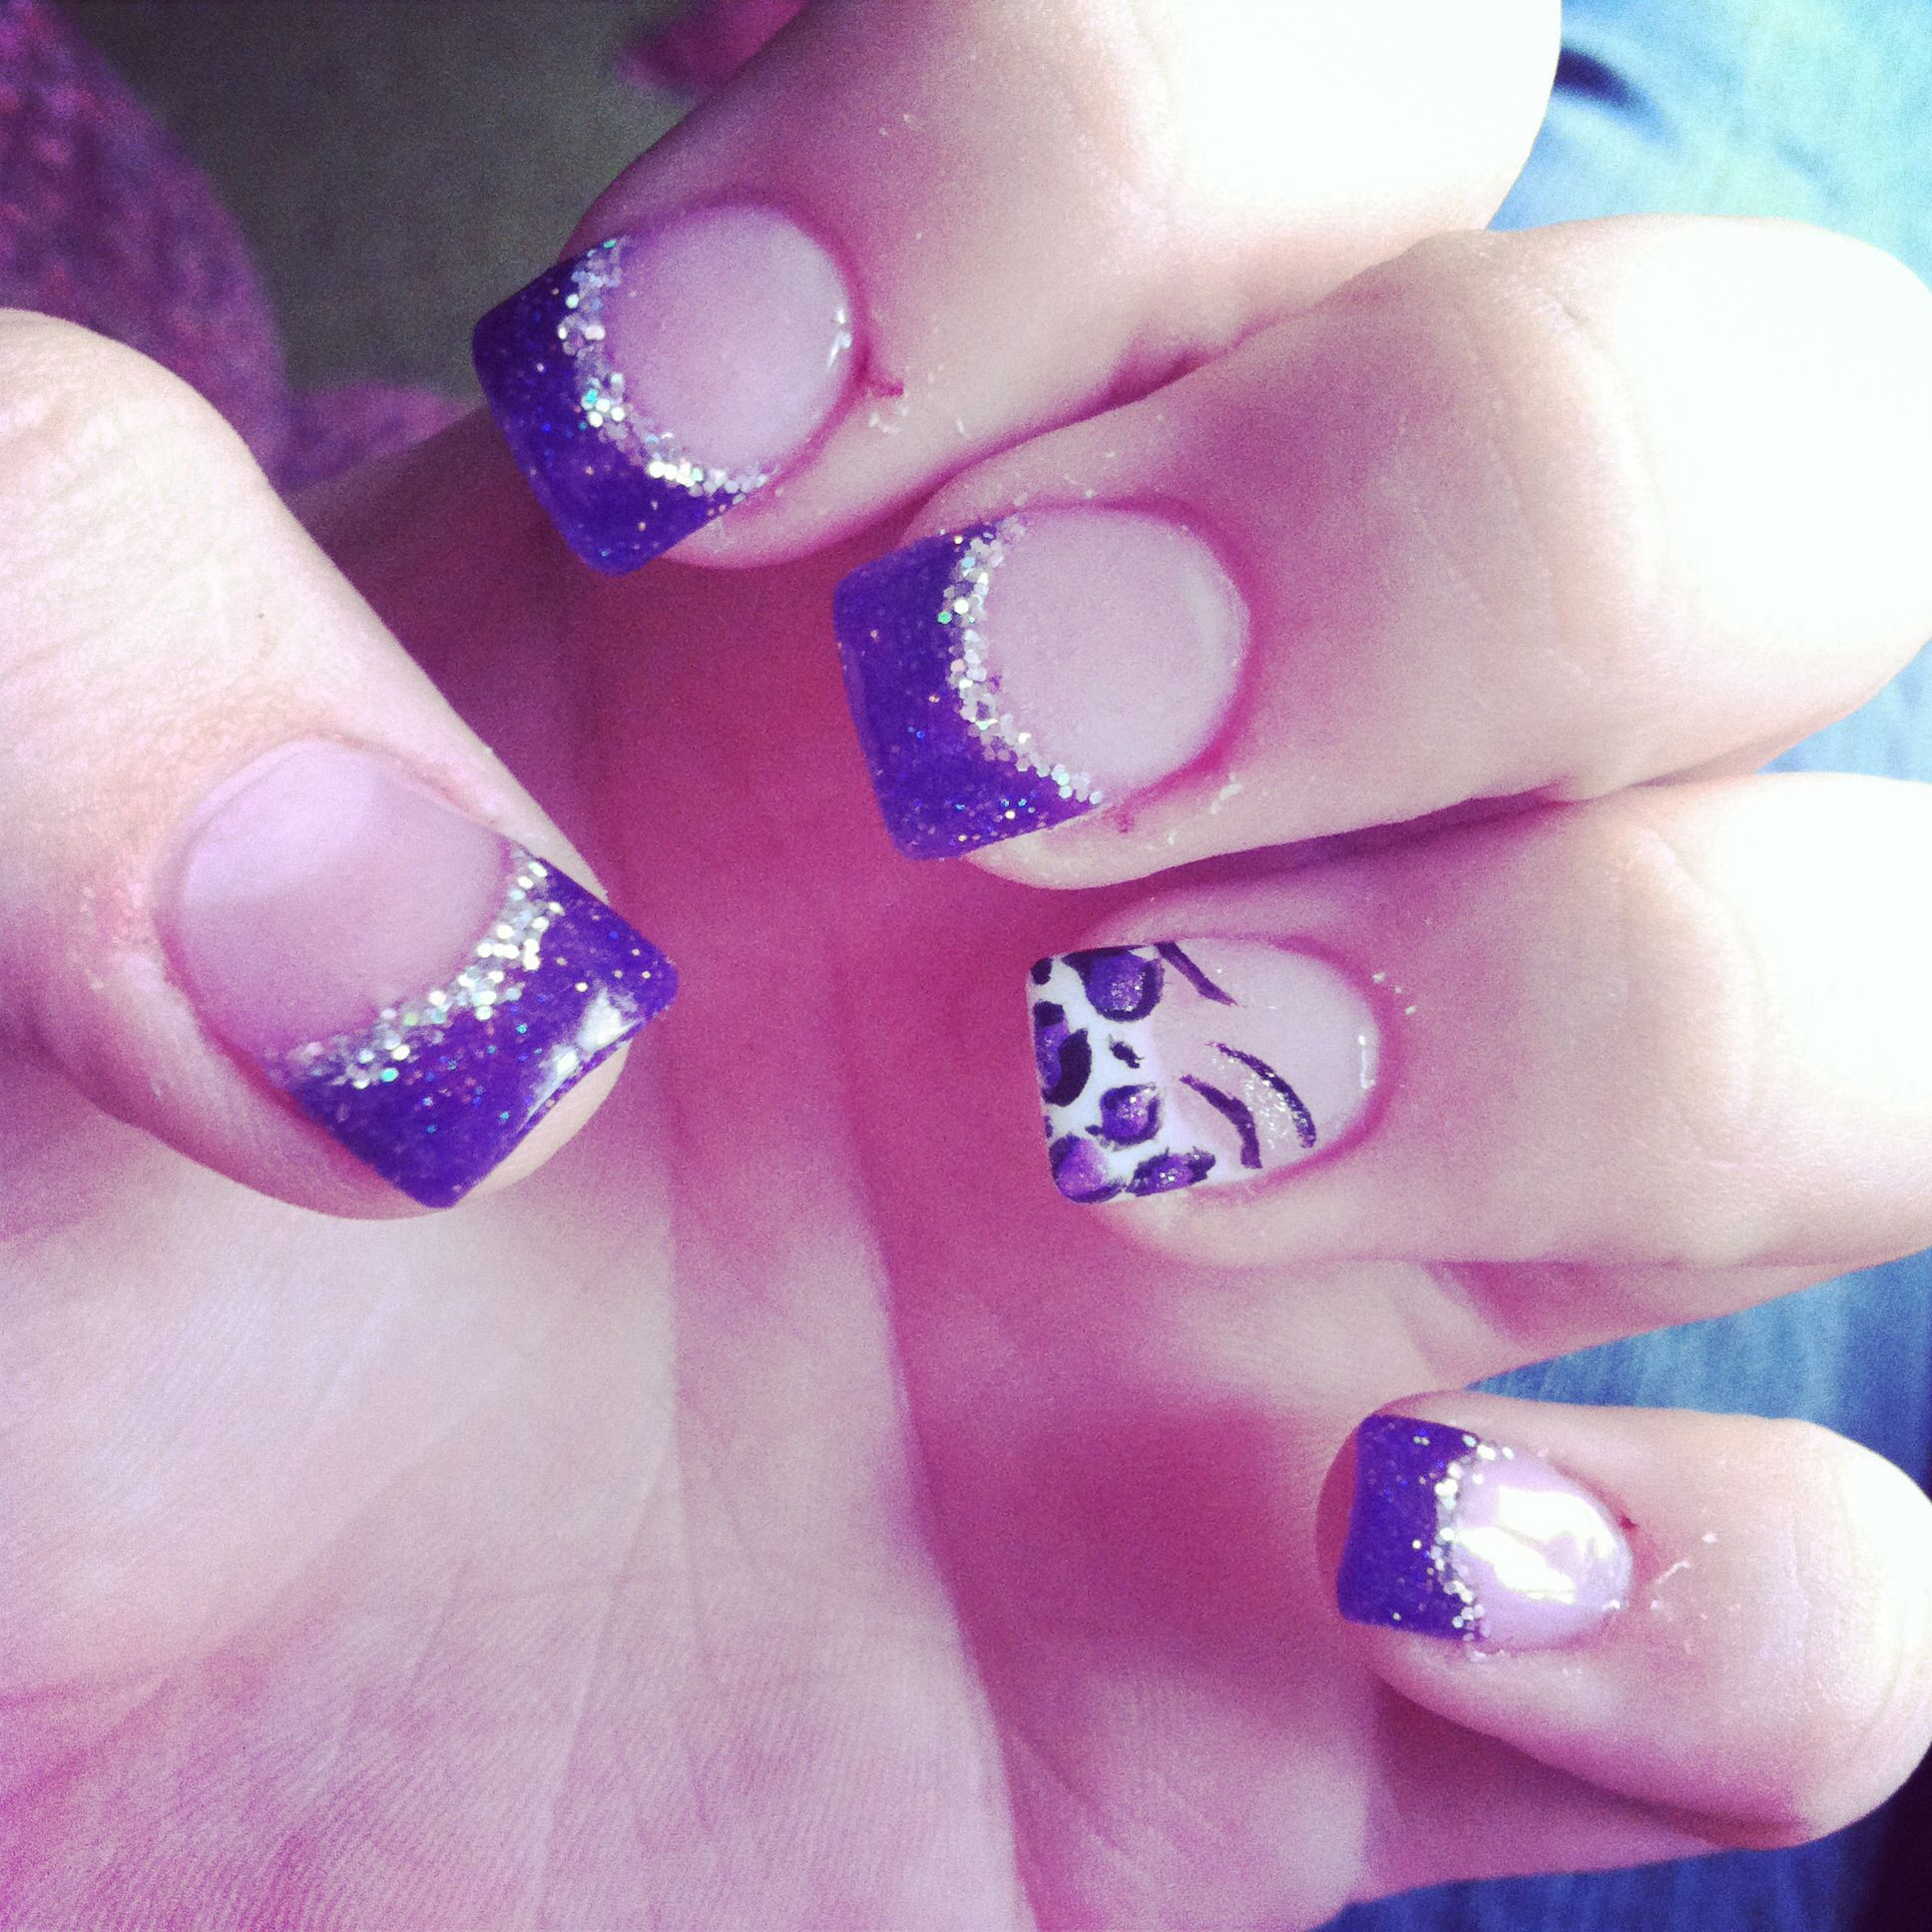 Pink zebra nails nails pinterest - Acrylic Nails Purple And Silver Tips With A White Cheetah And Zebra Party Nail